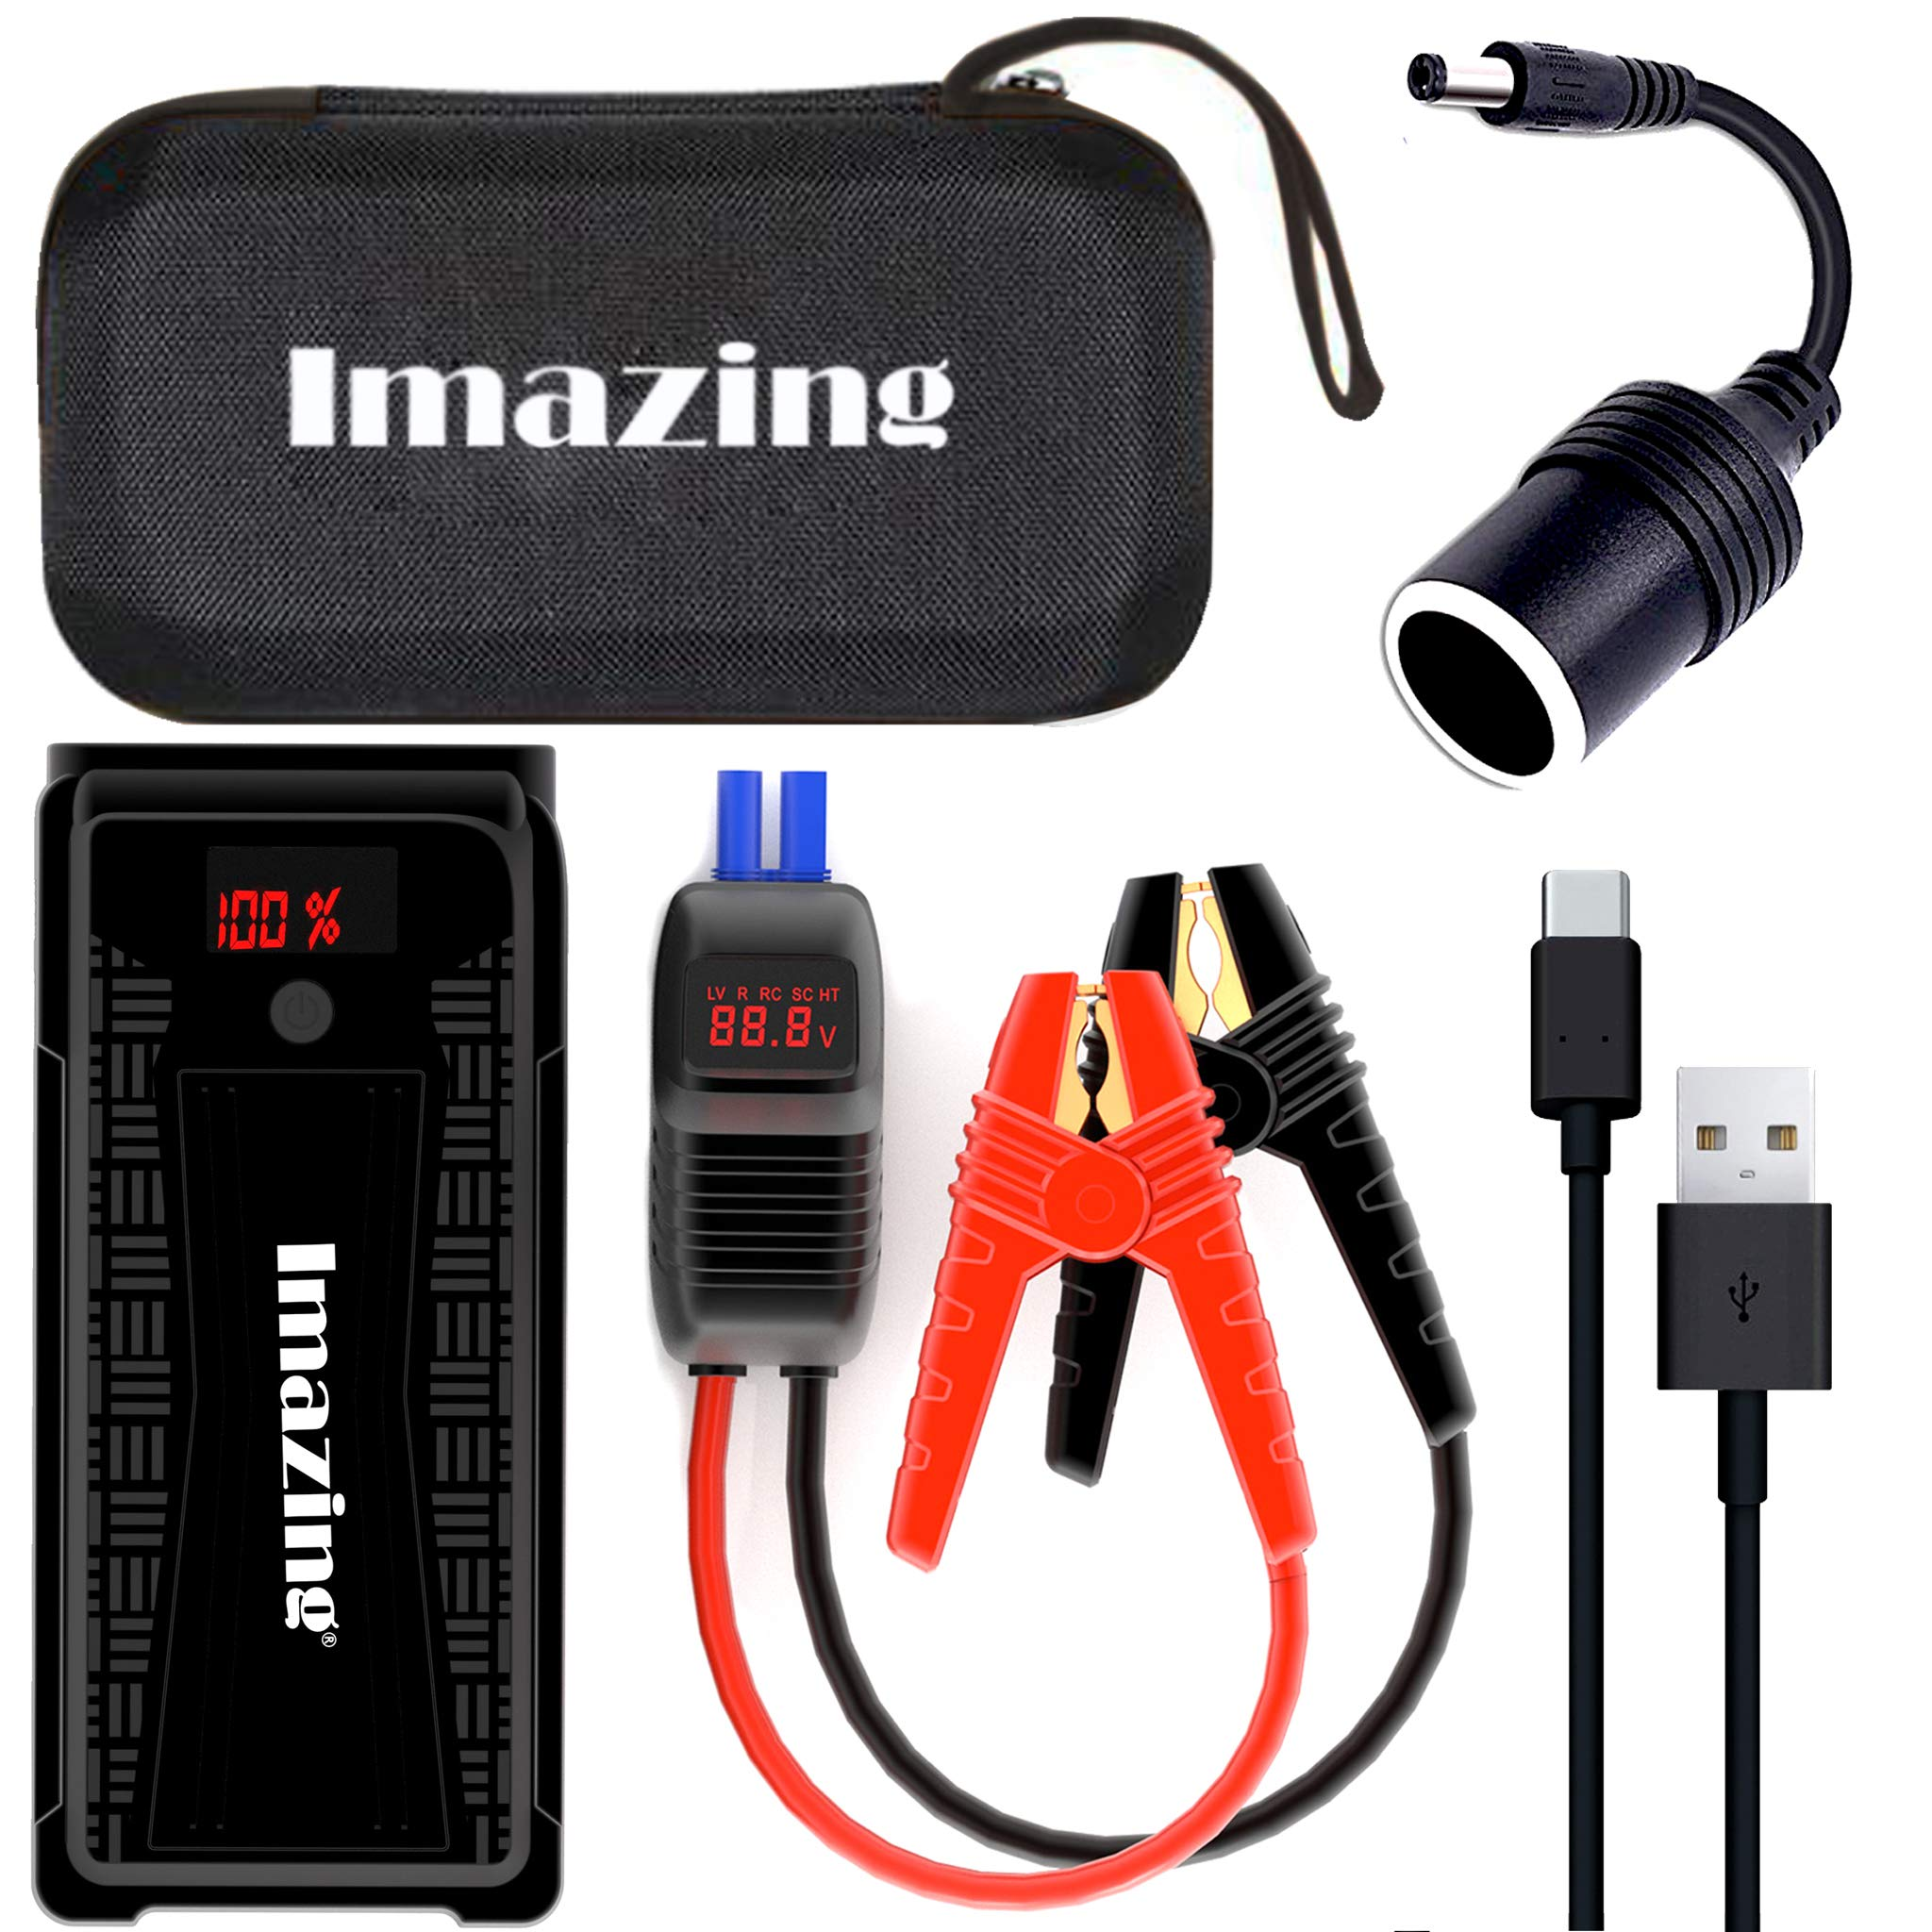 Imazing Portable Car Jump Starter - 2500A Peak 20000mAH (Up to 8L Gas or 8L Diesel Engine) 12V Auto Battery Booster Portable Power Pack with LCD Display Jumper Cables, QC 3.0 and LED Light by Imazing (Image #7)